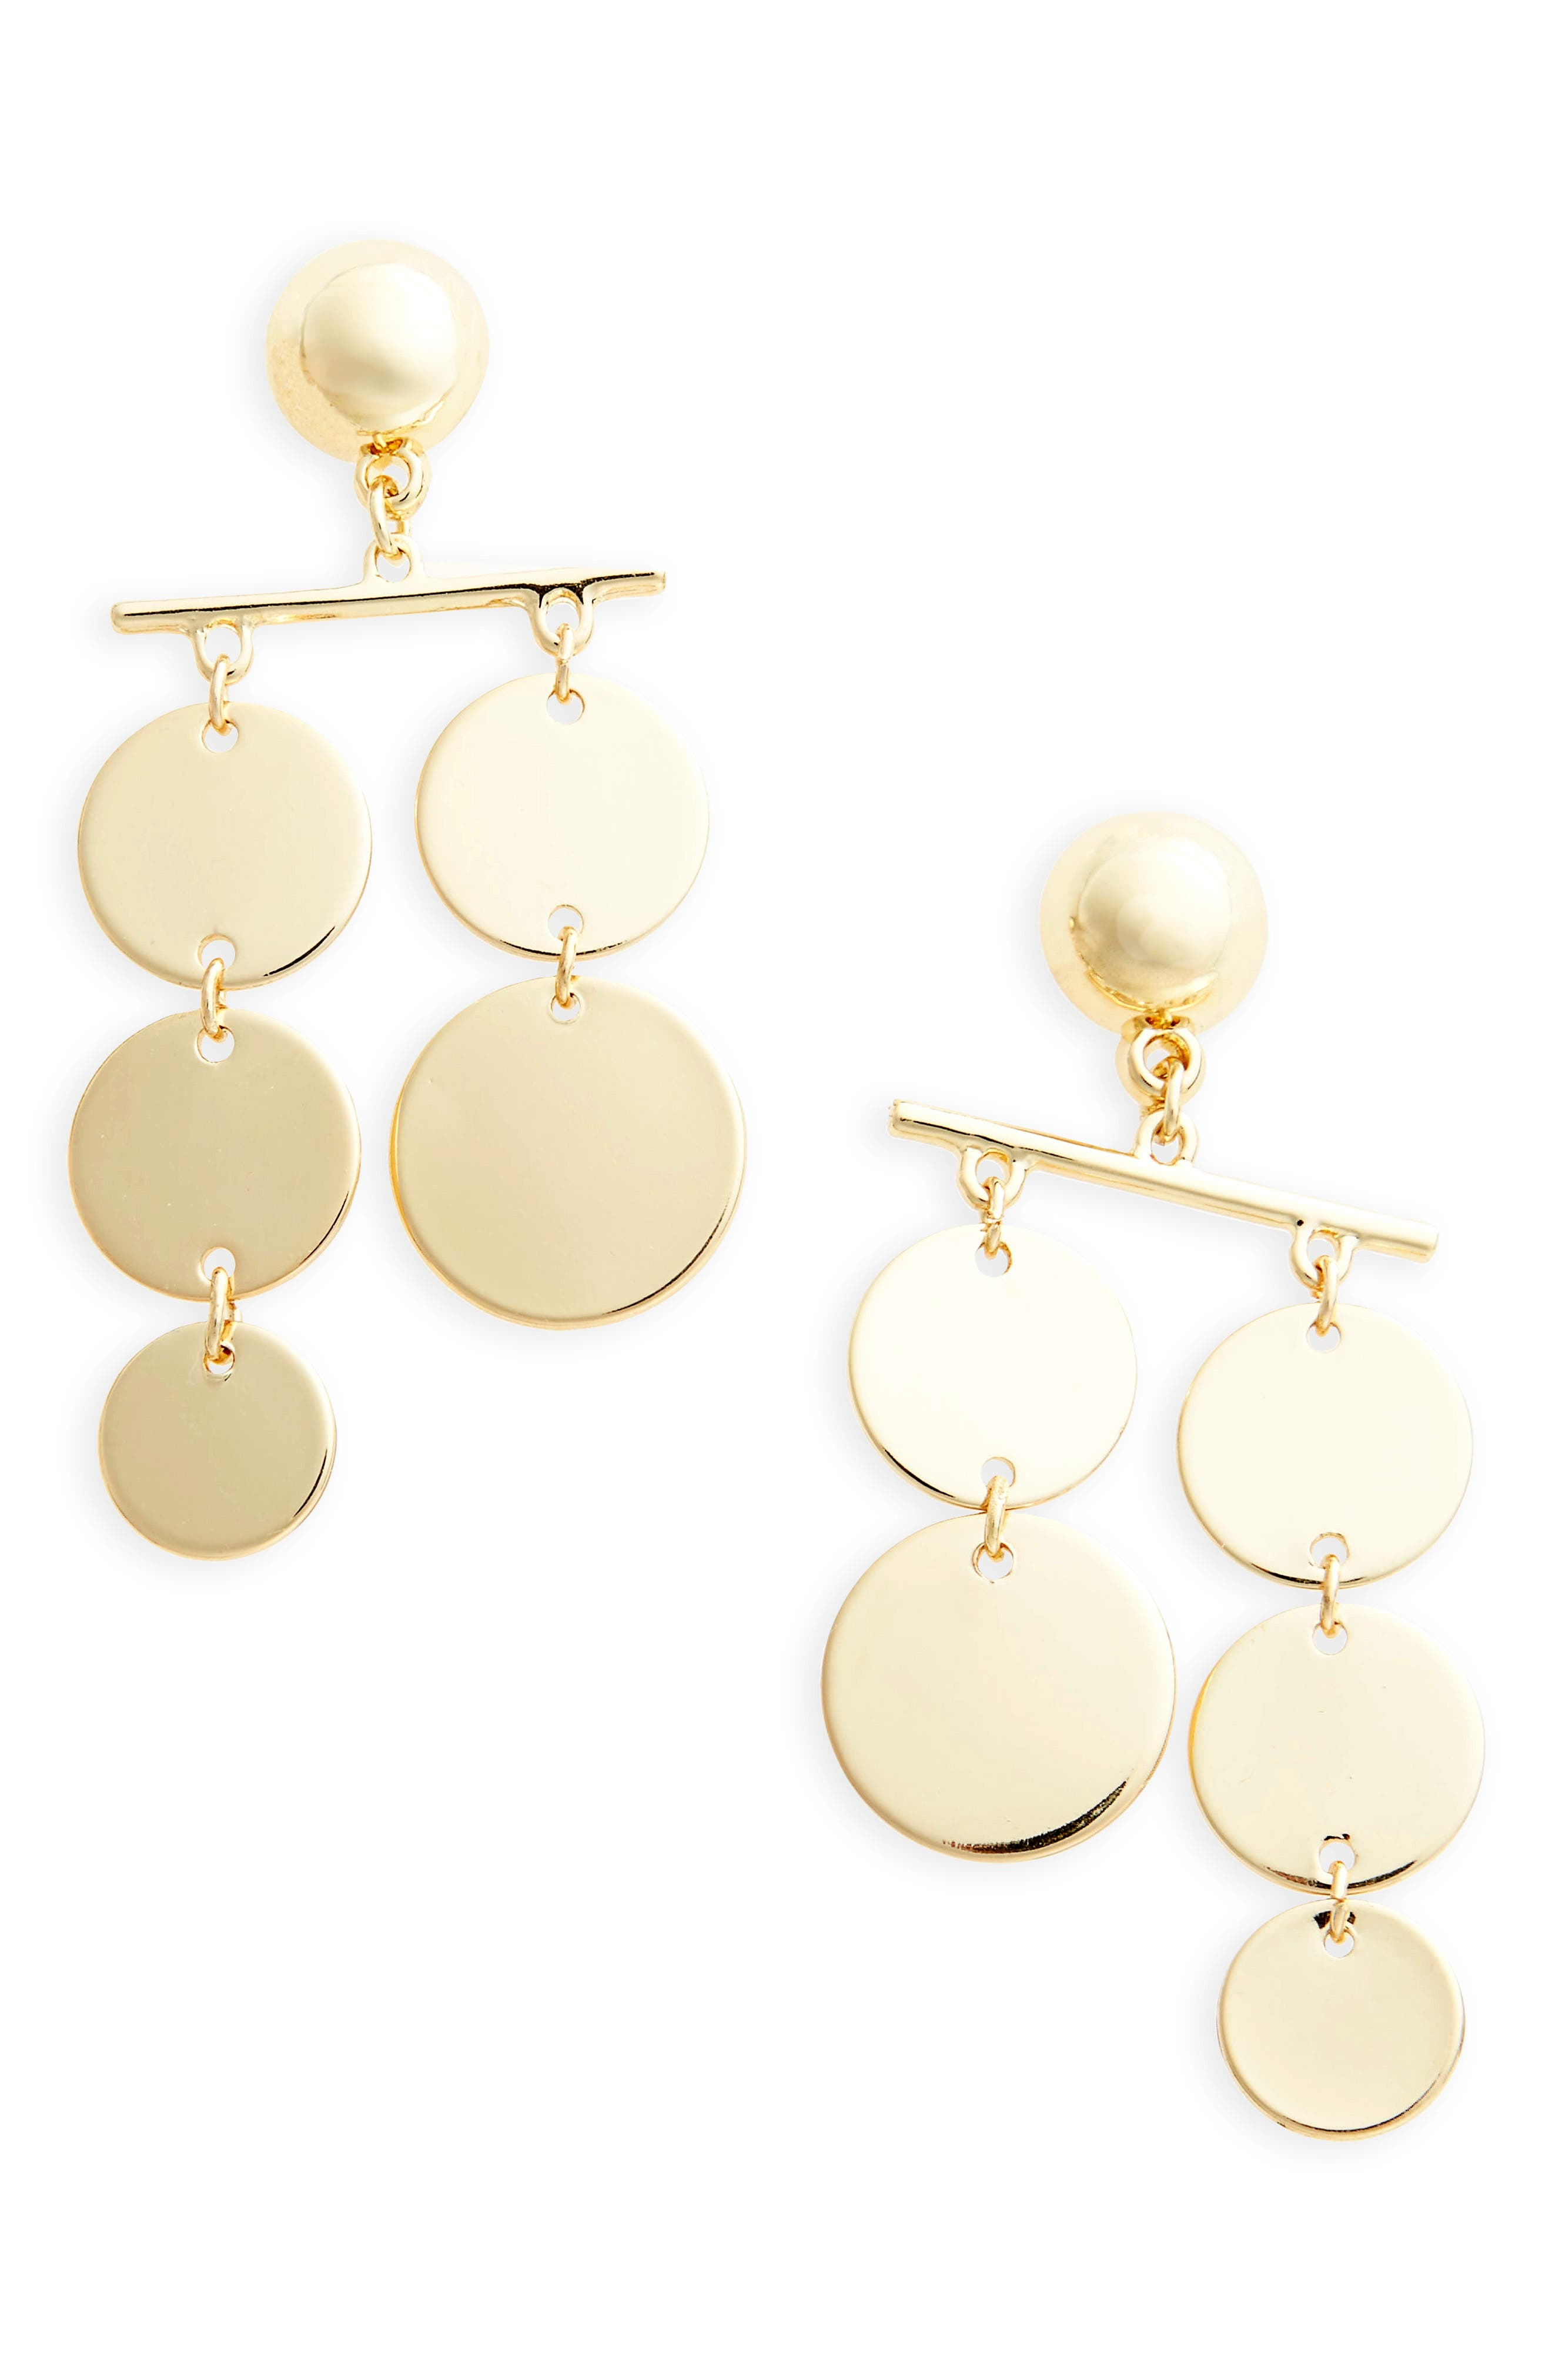 Circle Mobile Earrings,                         Main,                         color, Gold